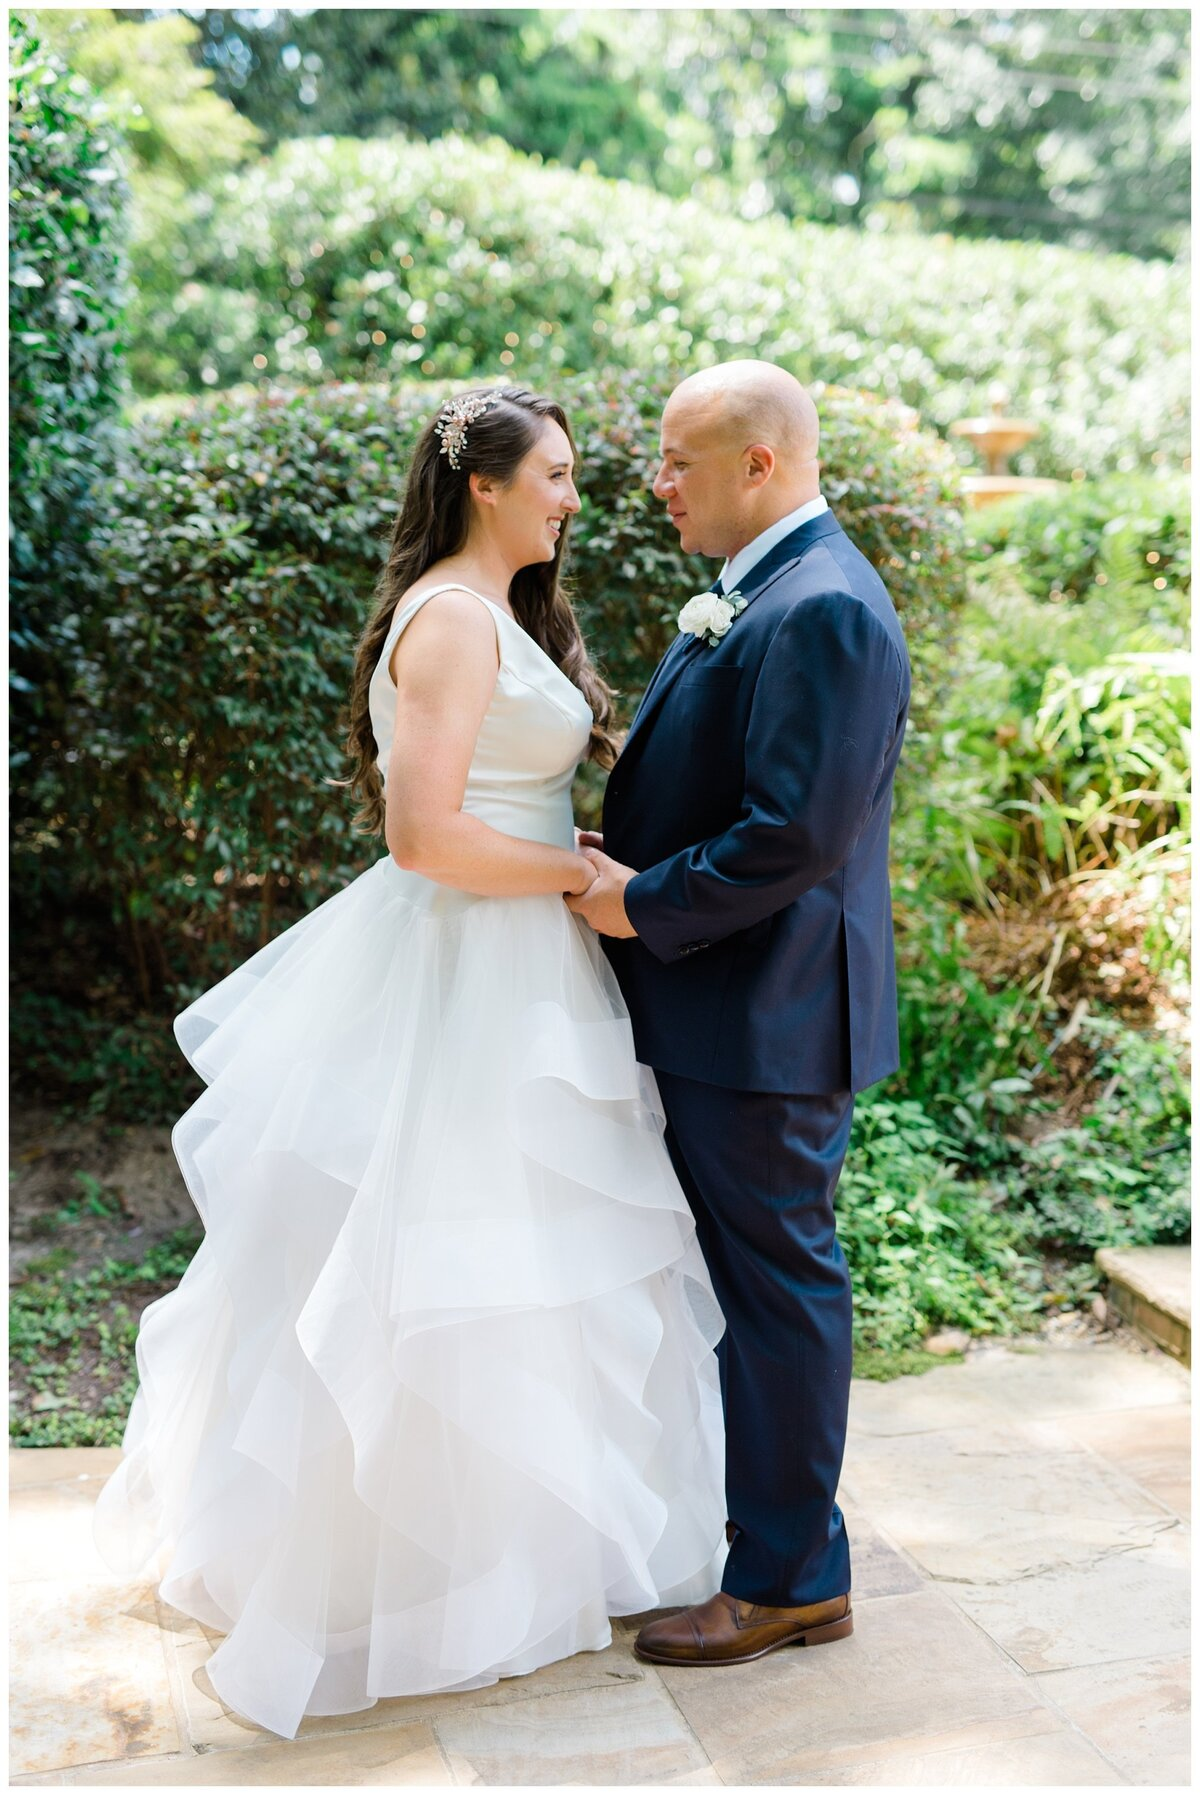 harkins-wedding-atlanta-georgia-photographer-13